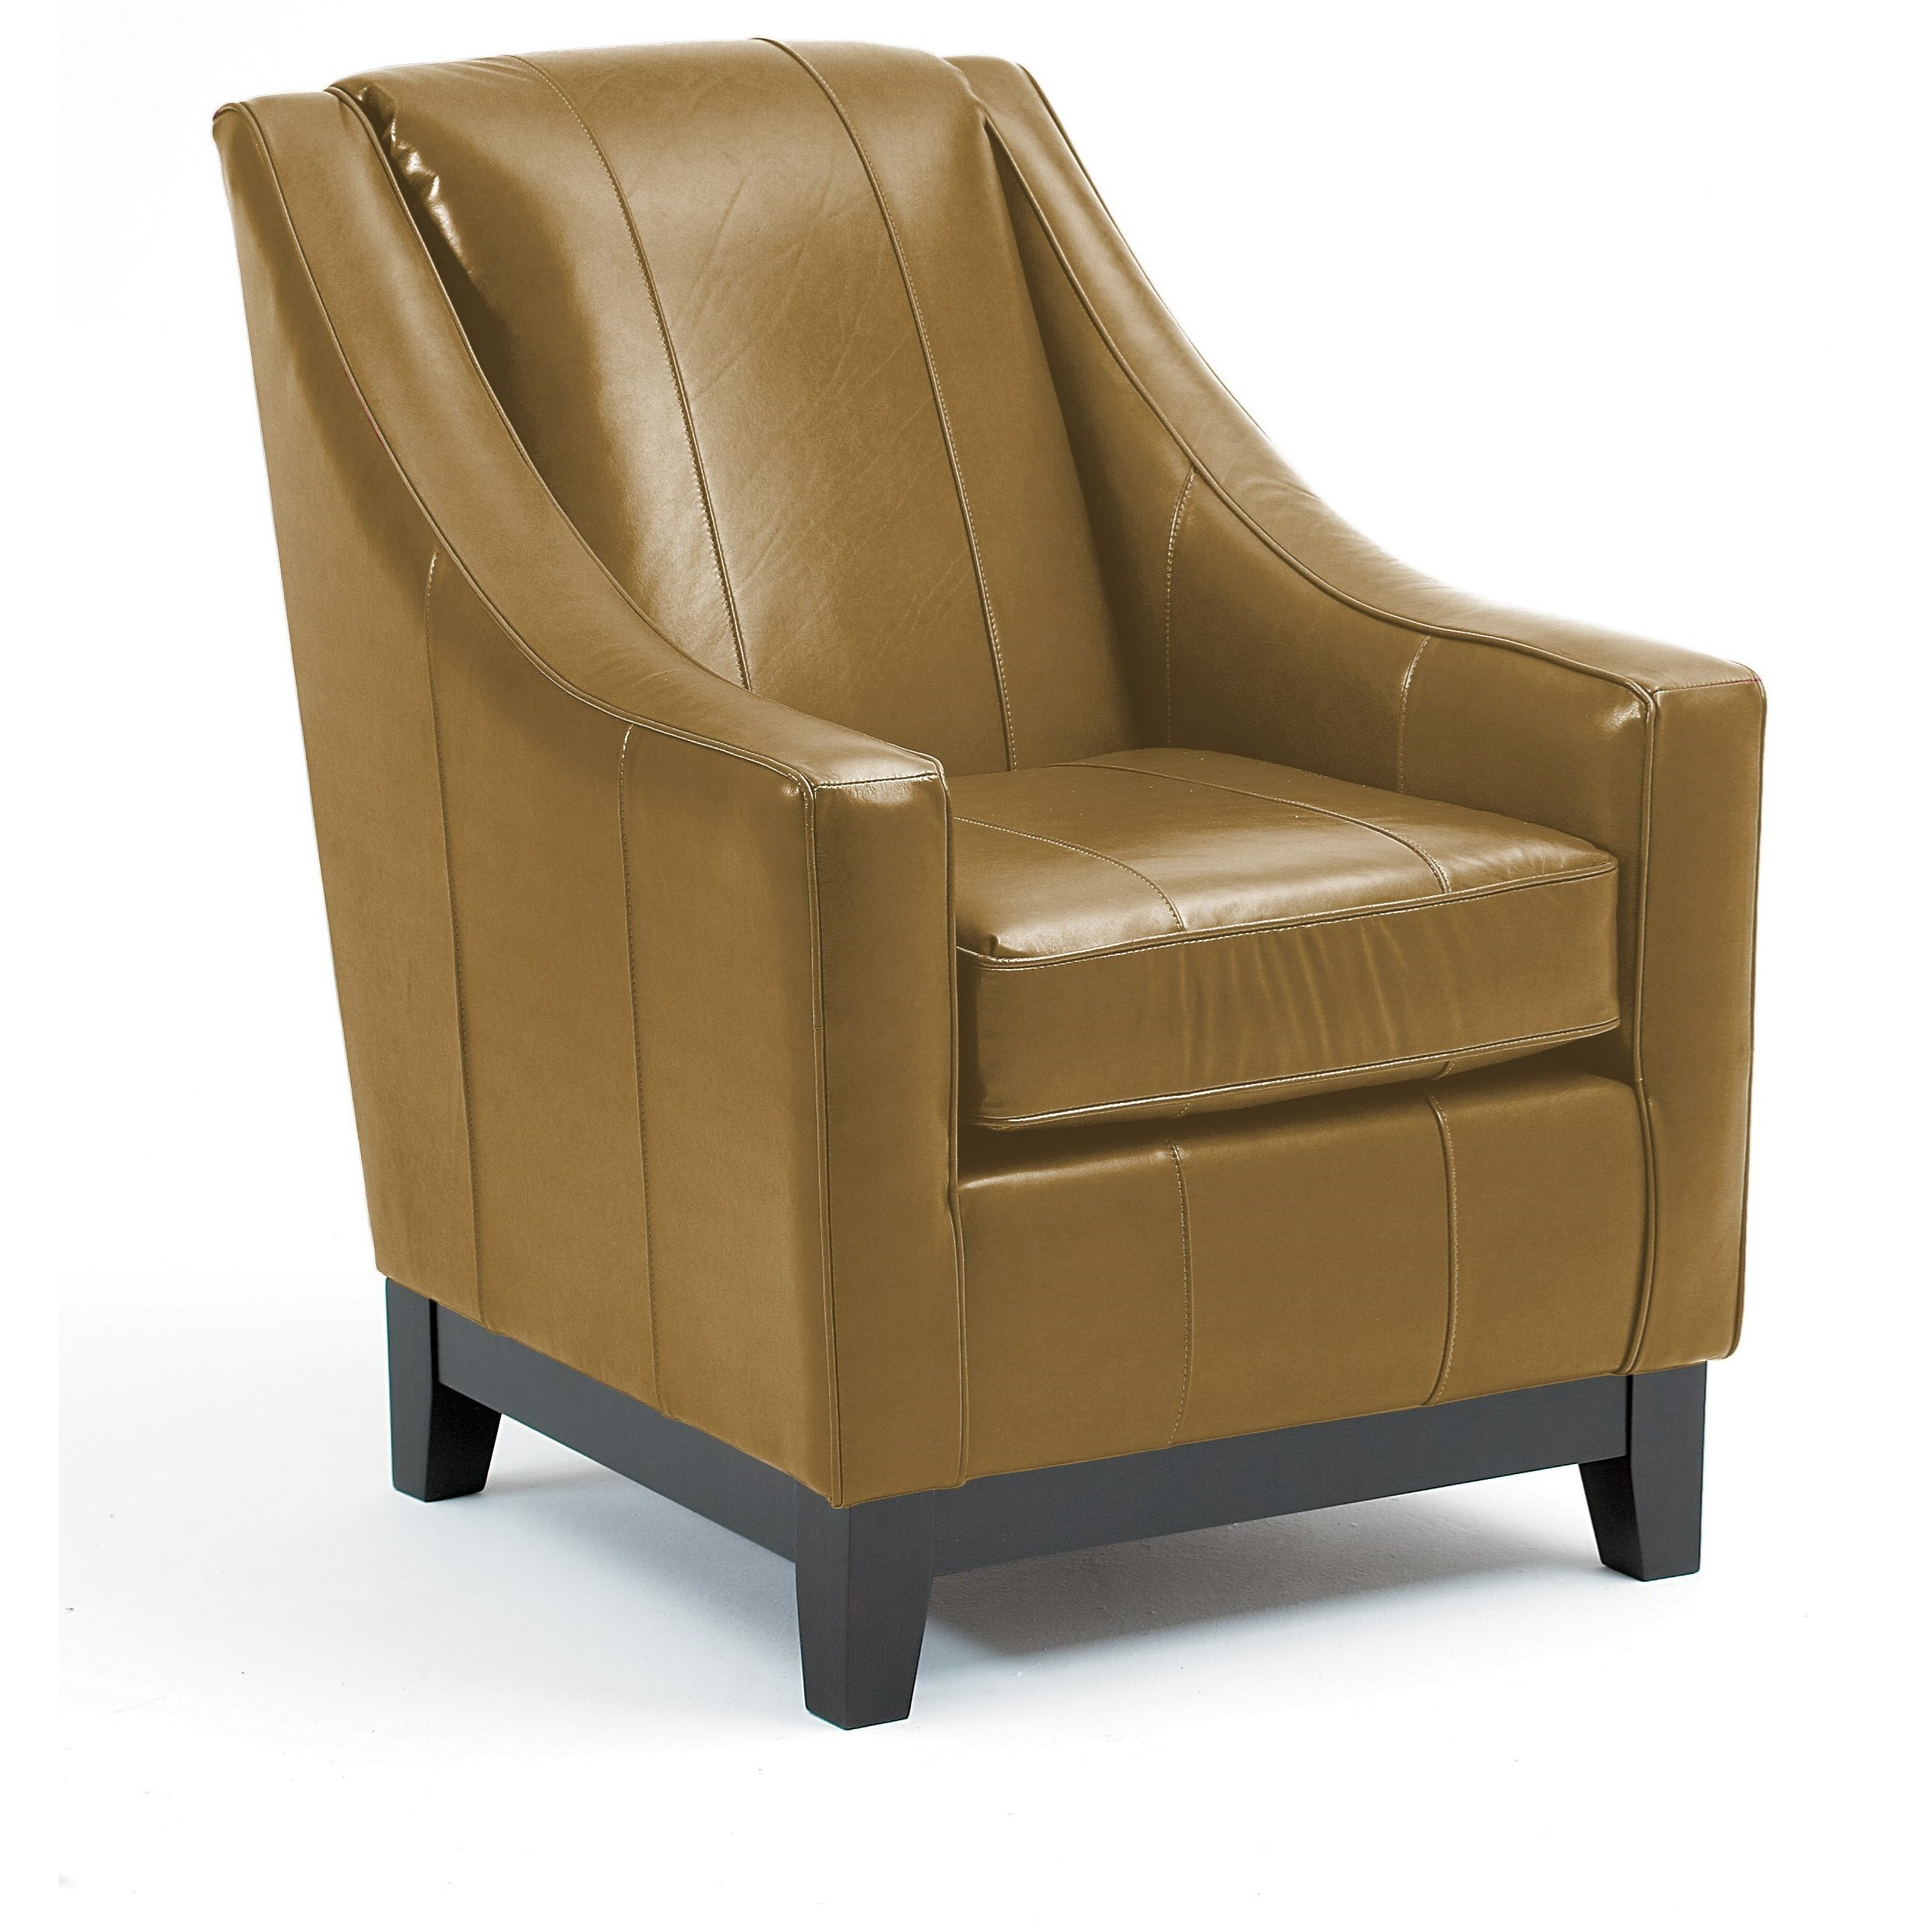 Best home furnishings chairs club mariko club chair for Best furniture for home